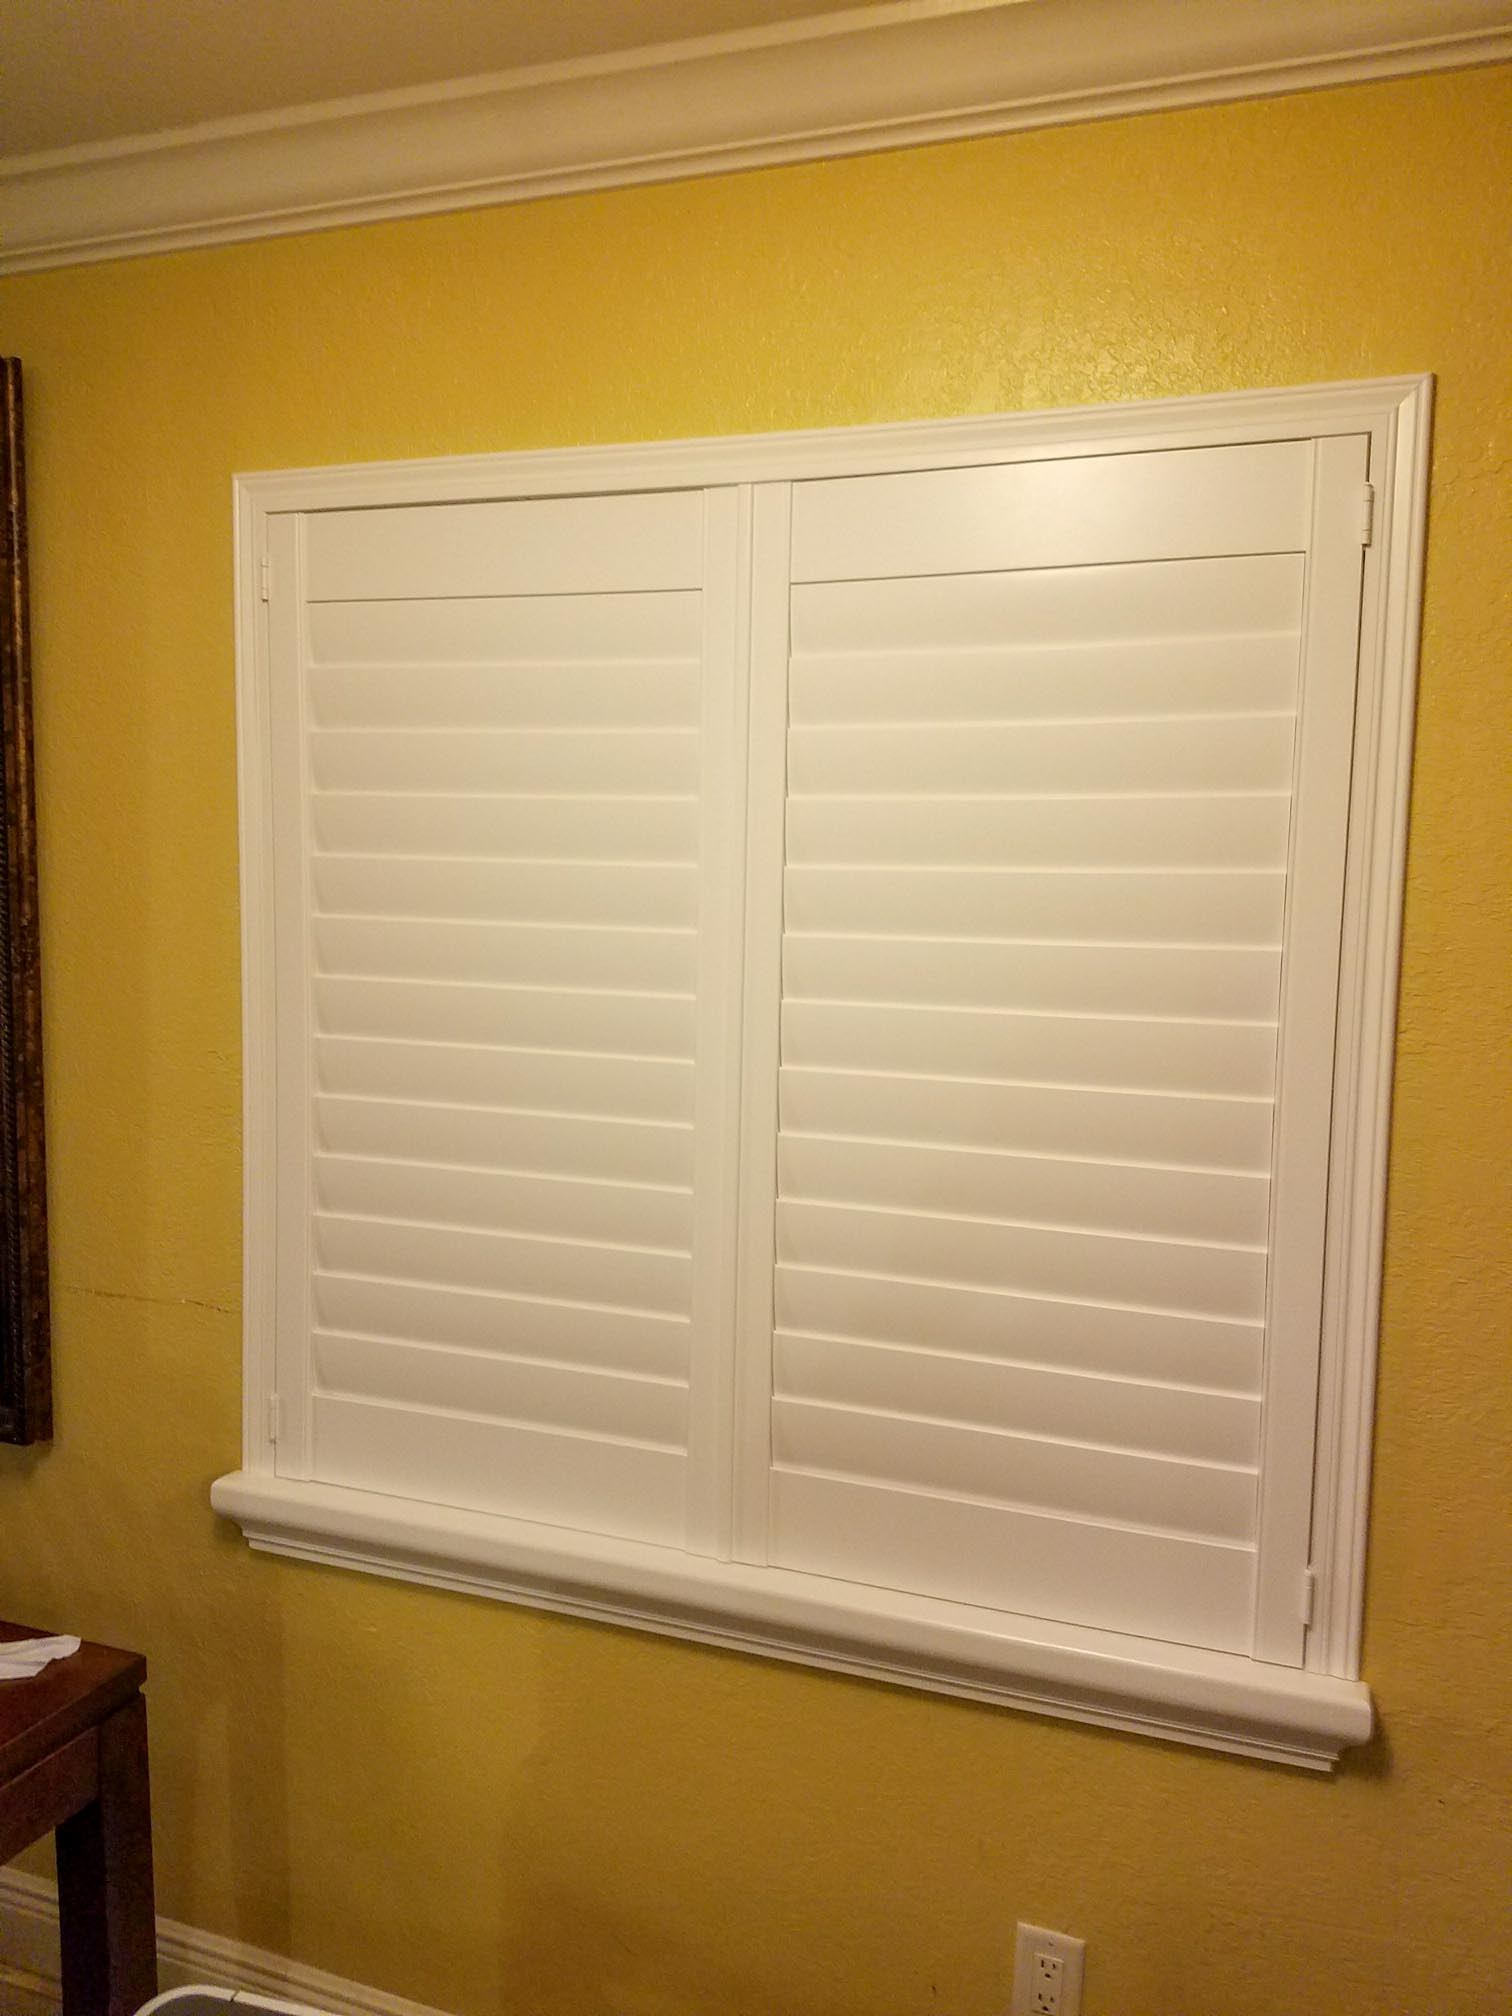 plantation shutters gallery PLANTATION SHUTTERS GALLERY 20160820 203244